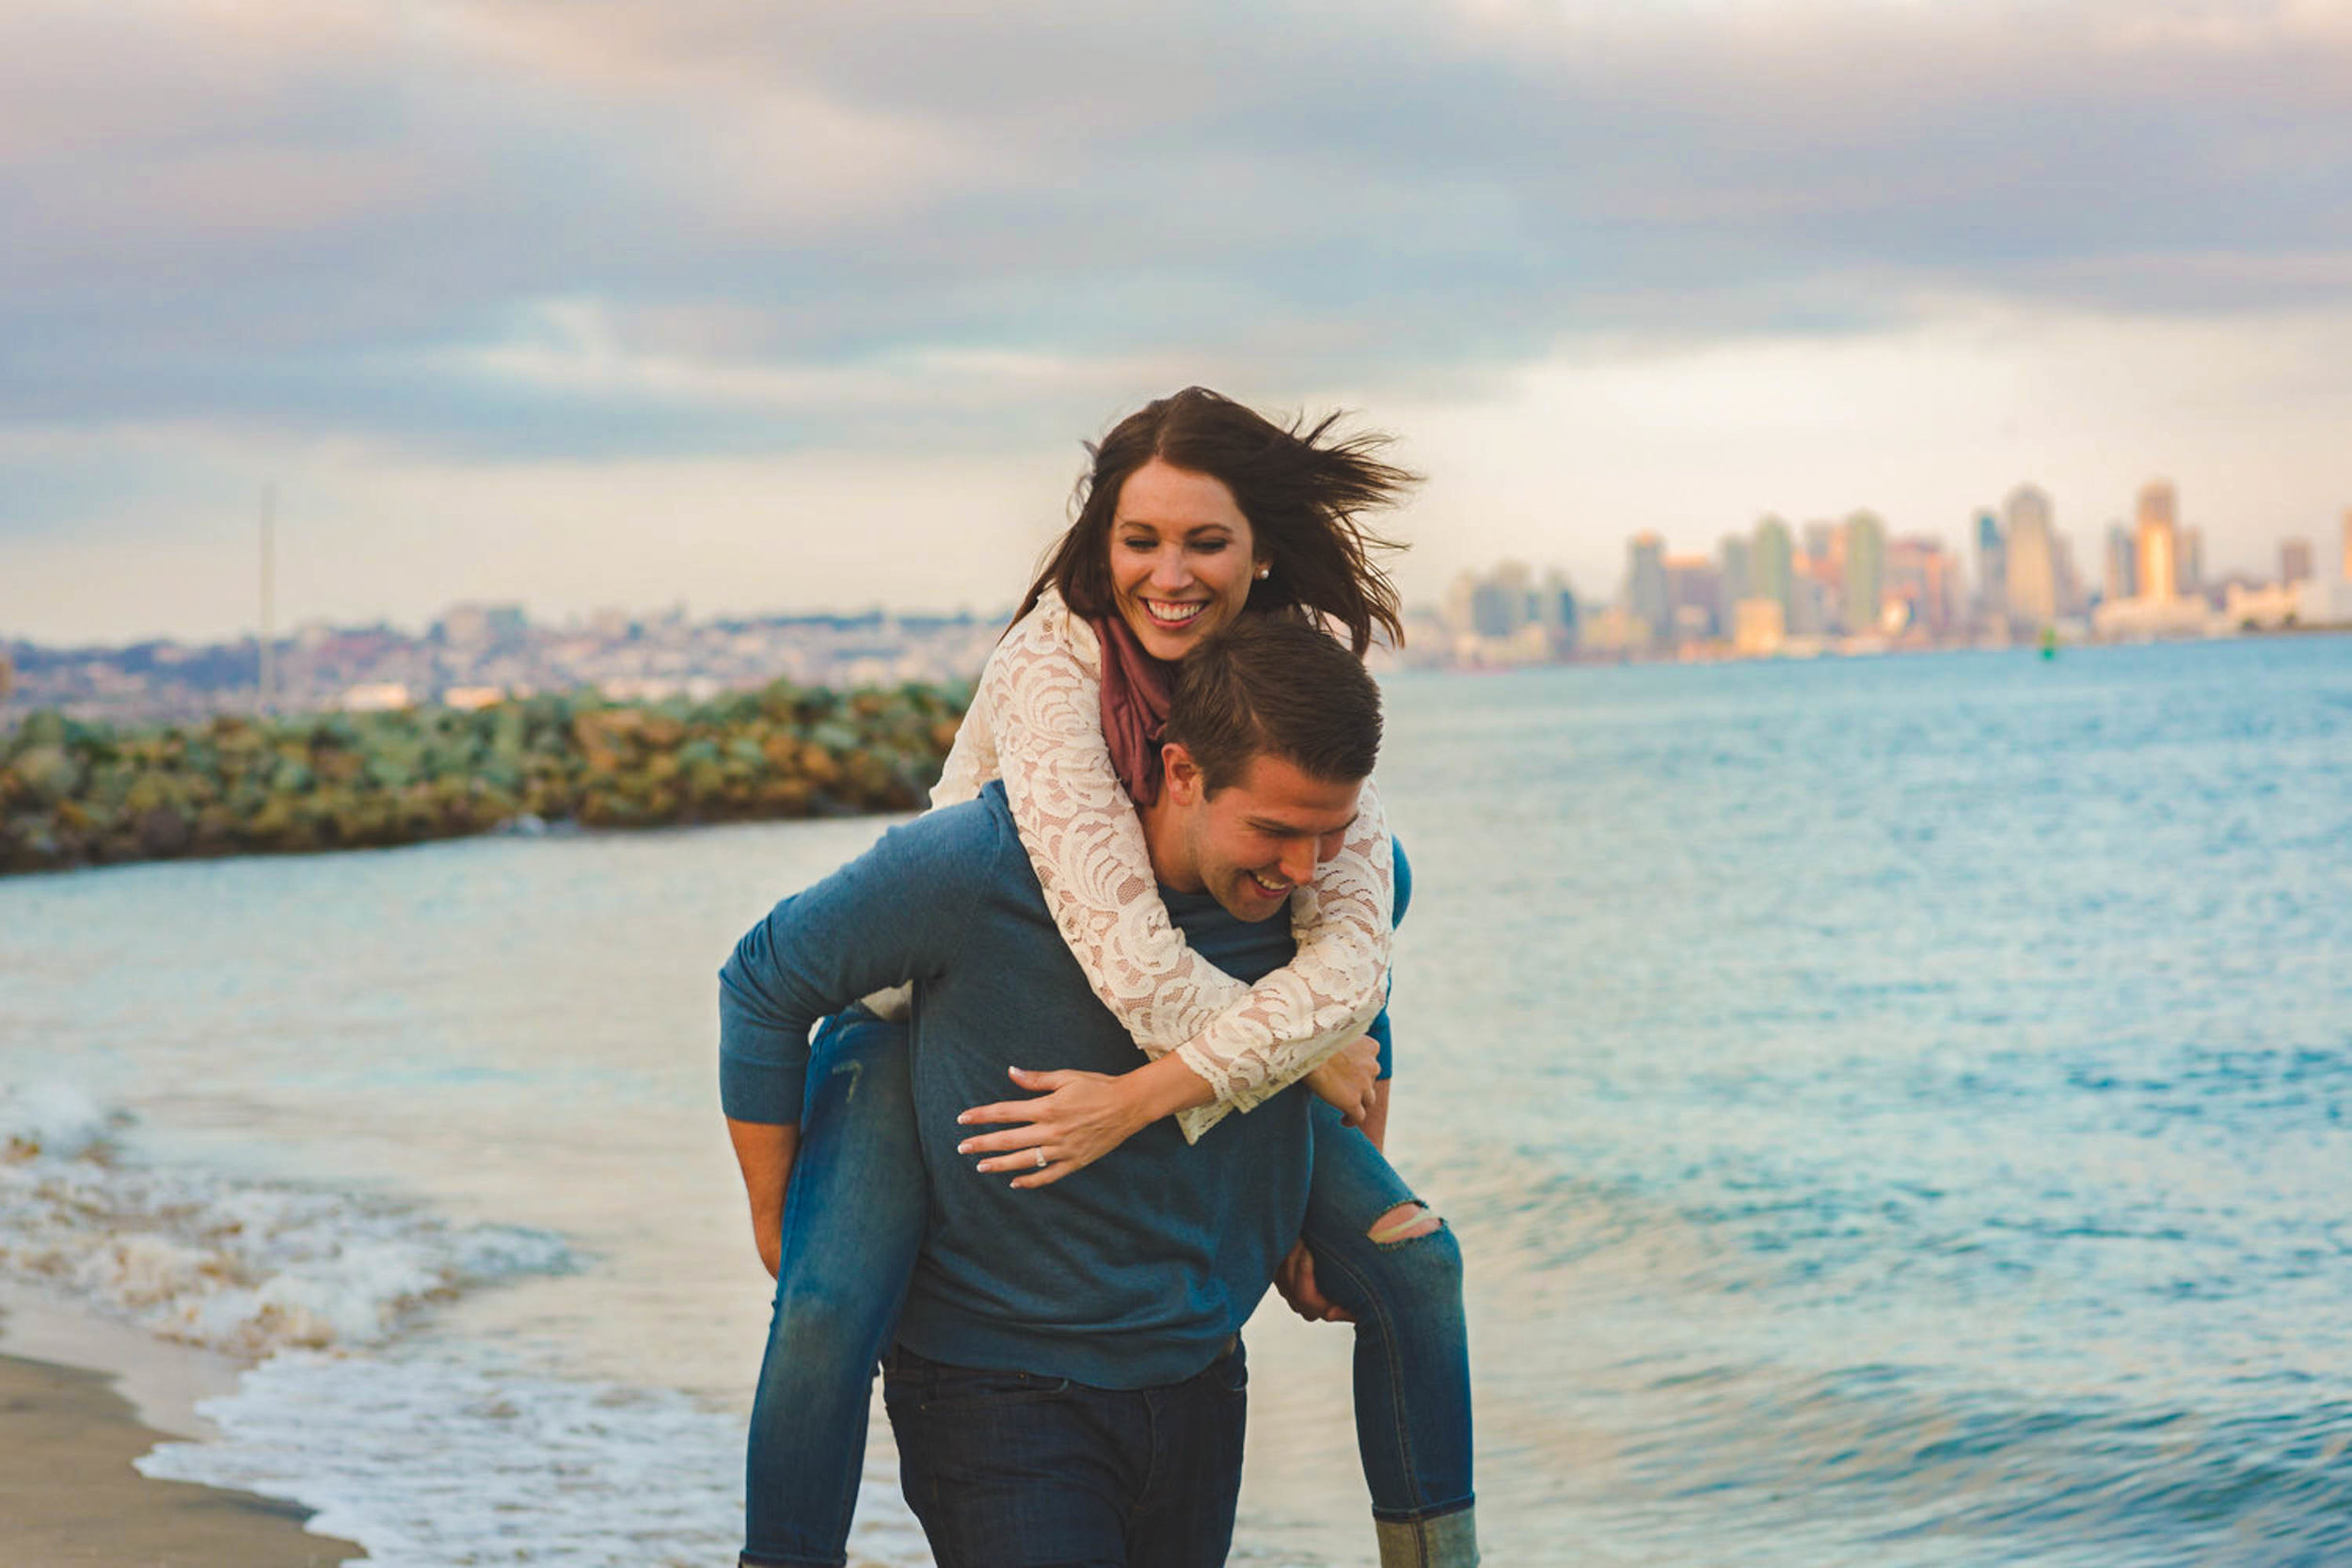 mykewilkenphotography.com engagement-2.jpg